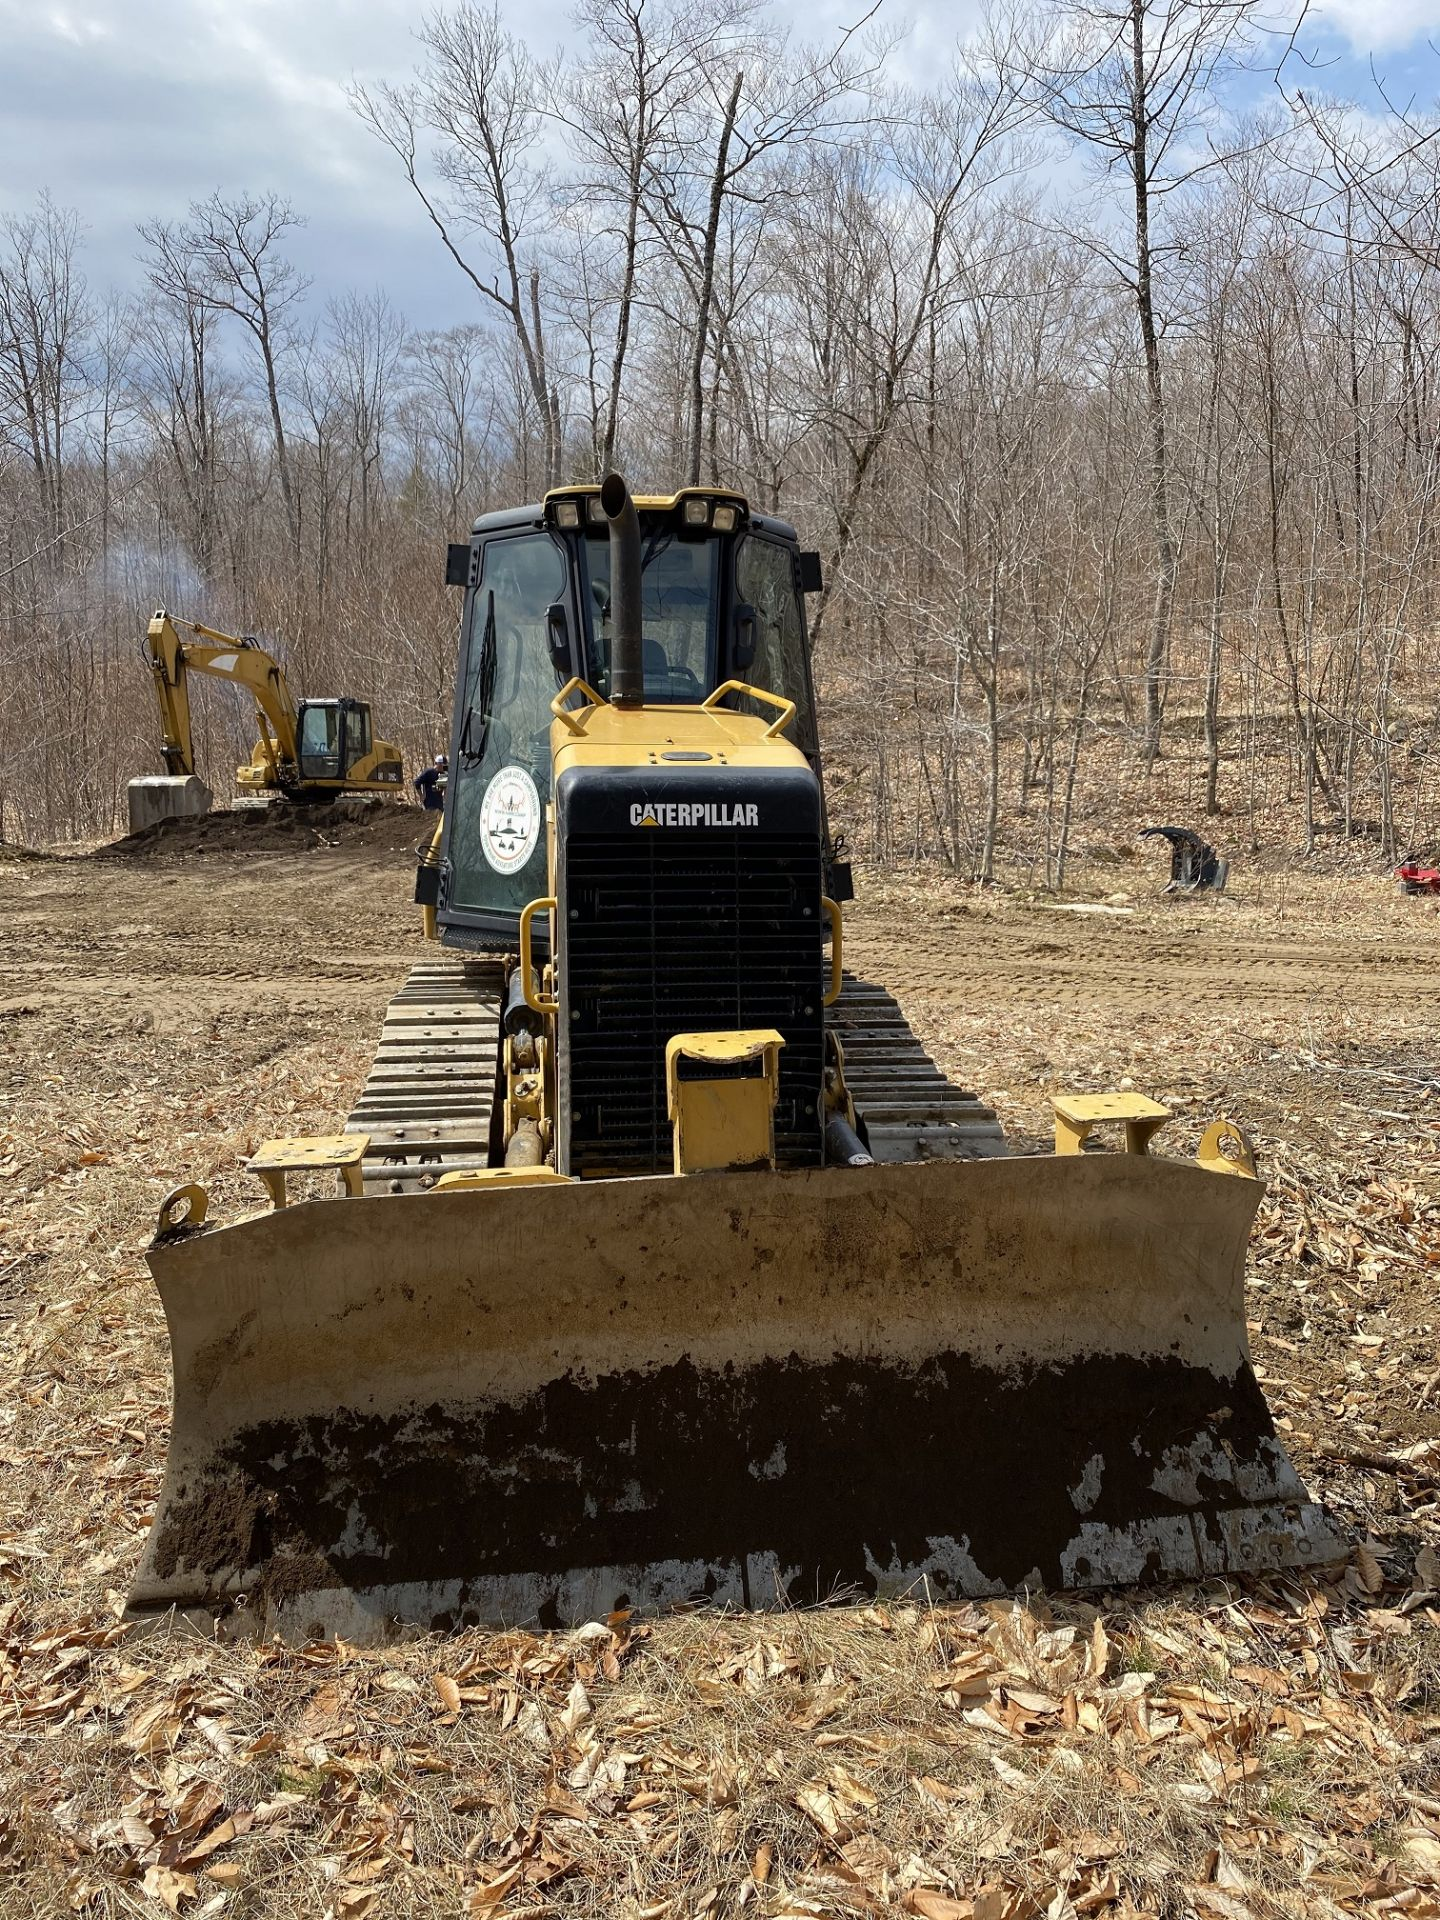 2014 Caterpillar Track Dozer #D3K2XL w/ 8' Plow, CAT 4.4 ACE RT Diesel Engine, HRS: 1926, PIN#: - Image 3 of 9